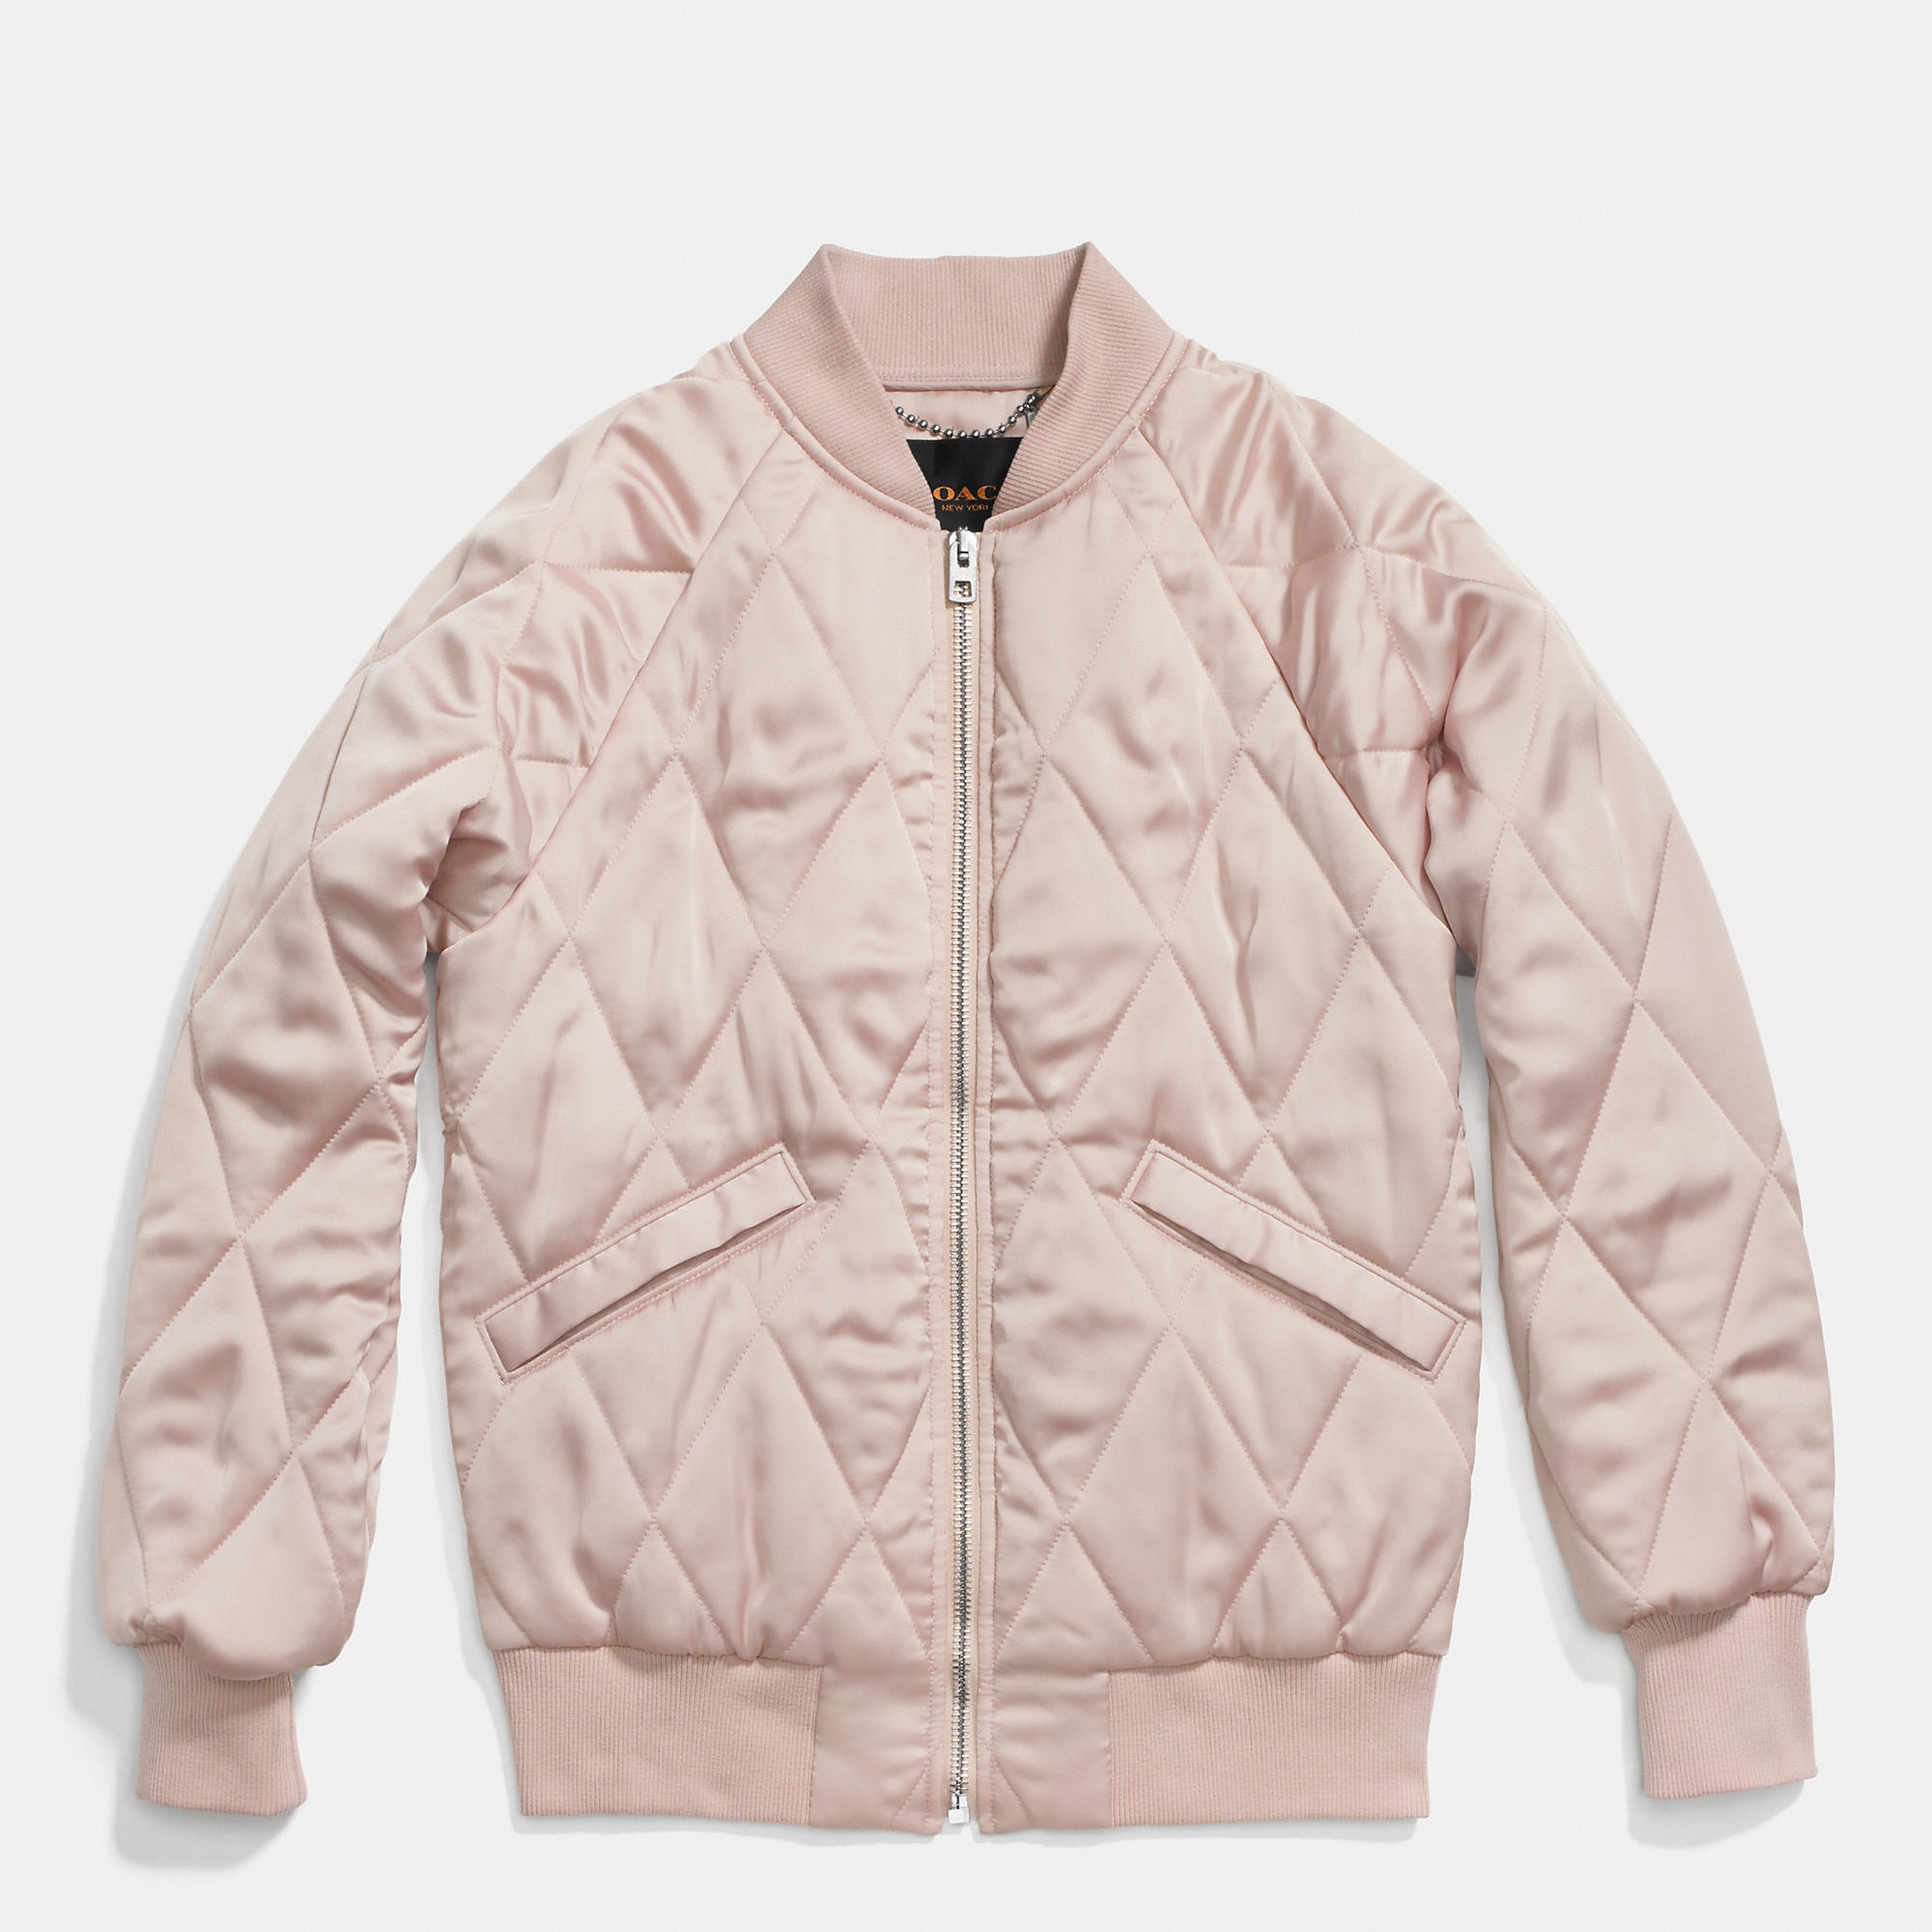 Coach Quilted Blouson Jacket in Pink | Lyst : coach quilted coat - Adamdwight.com